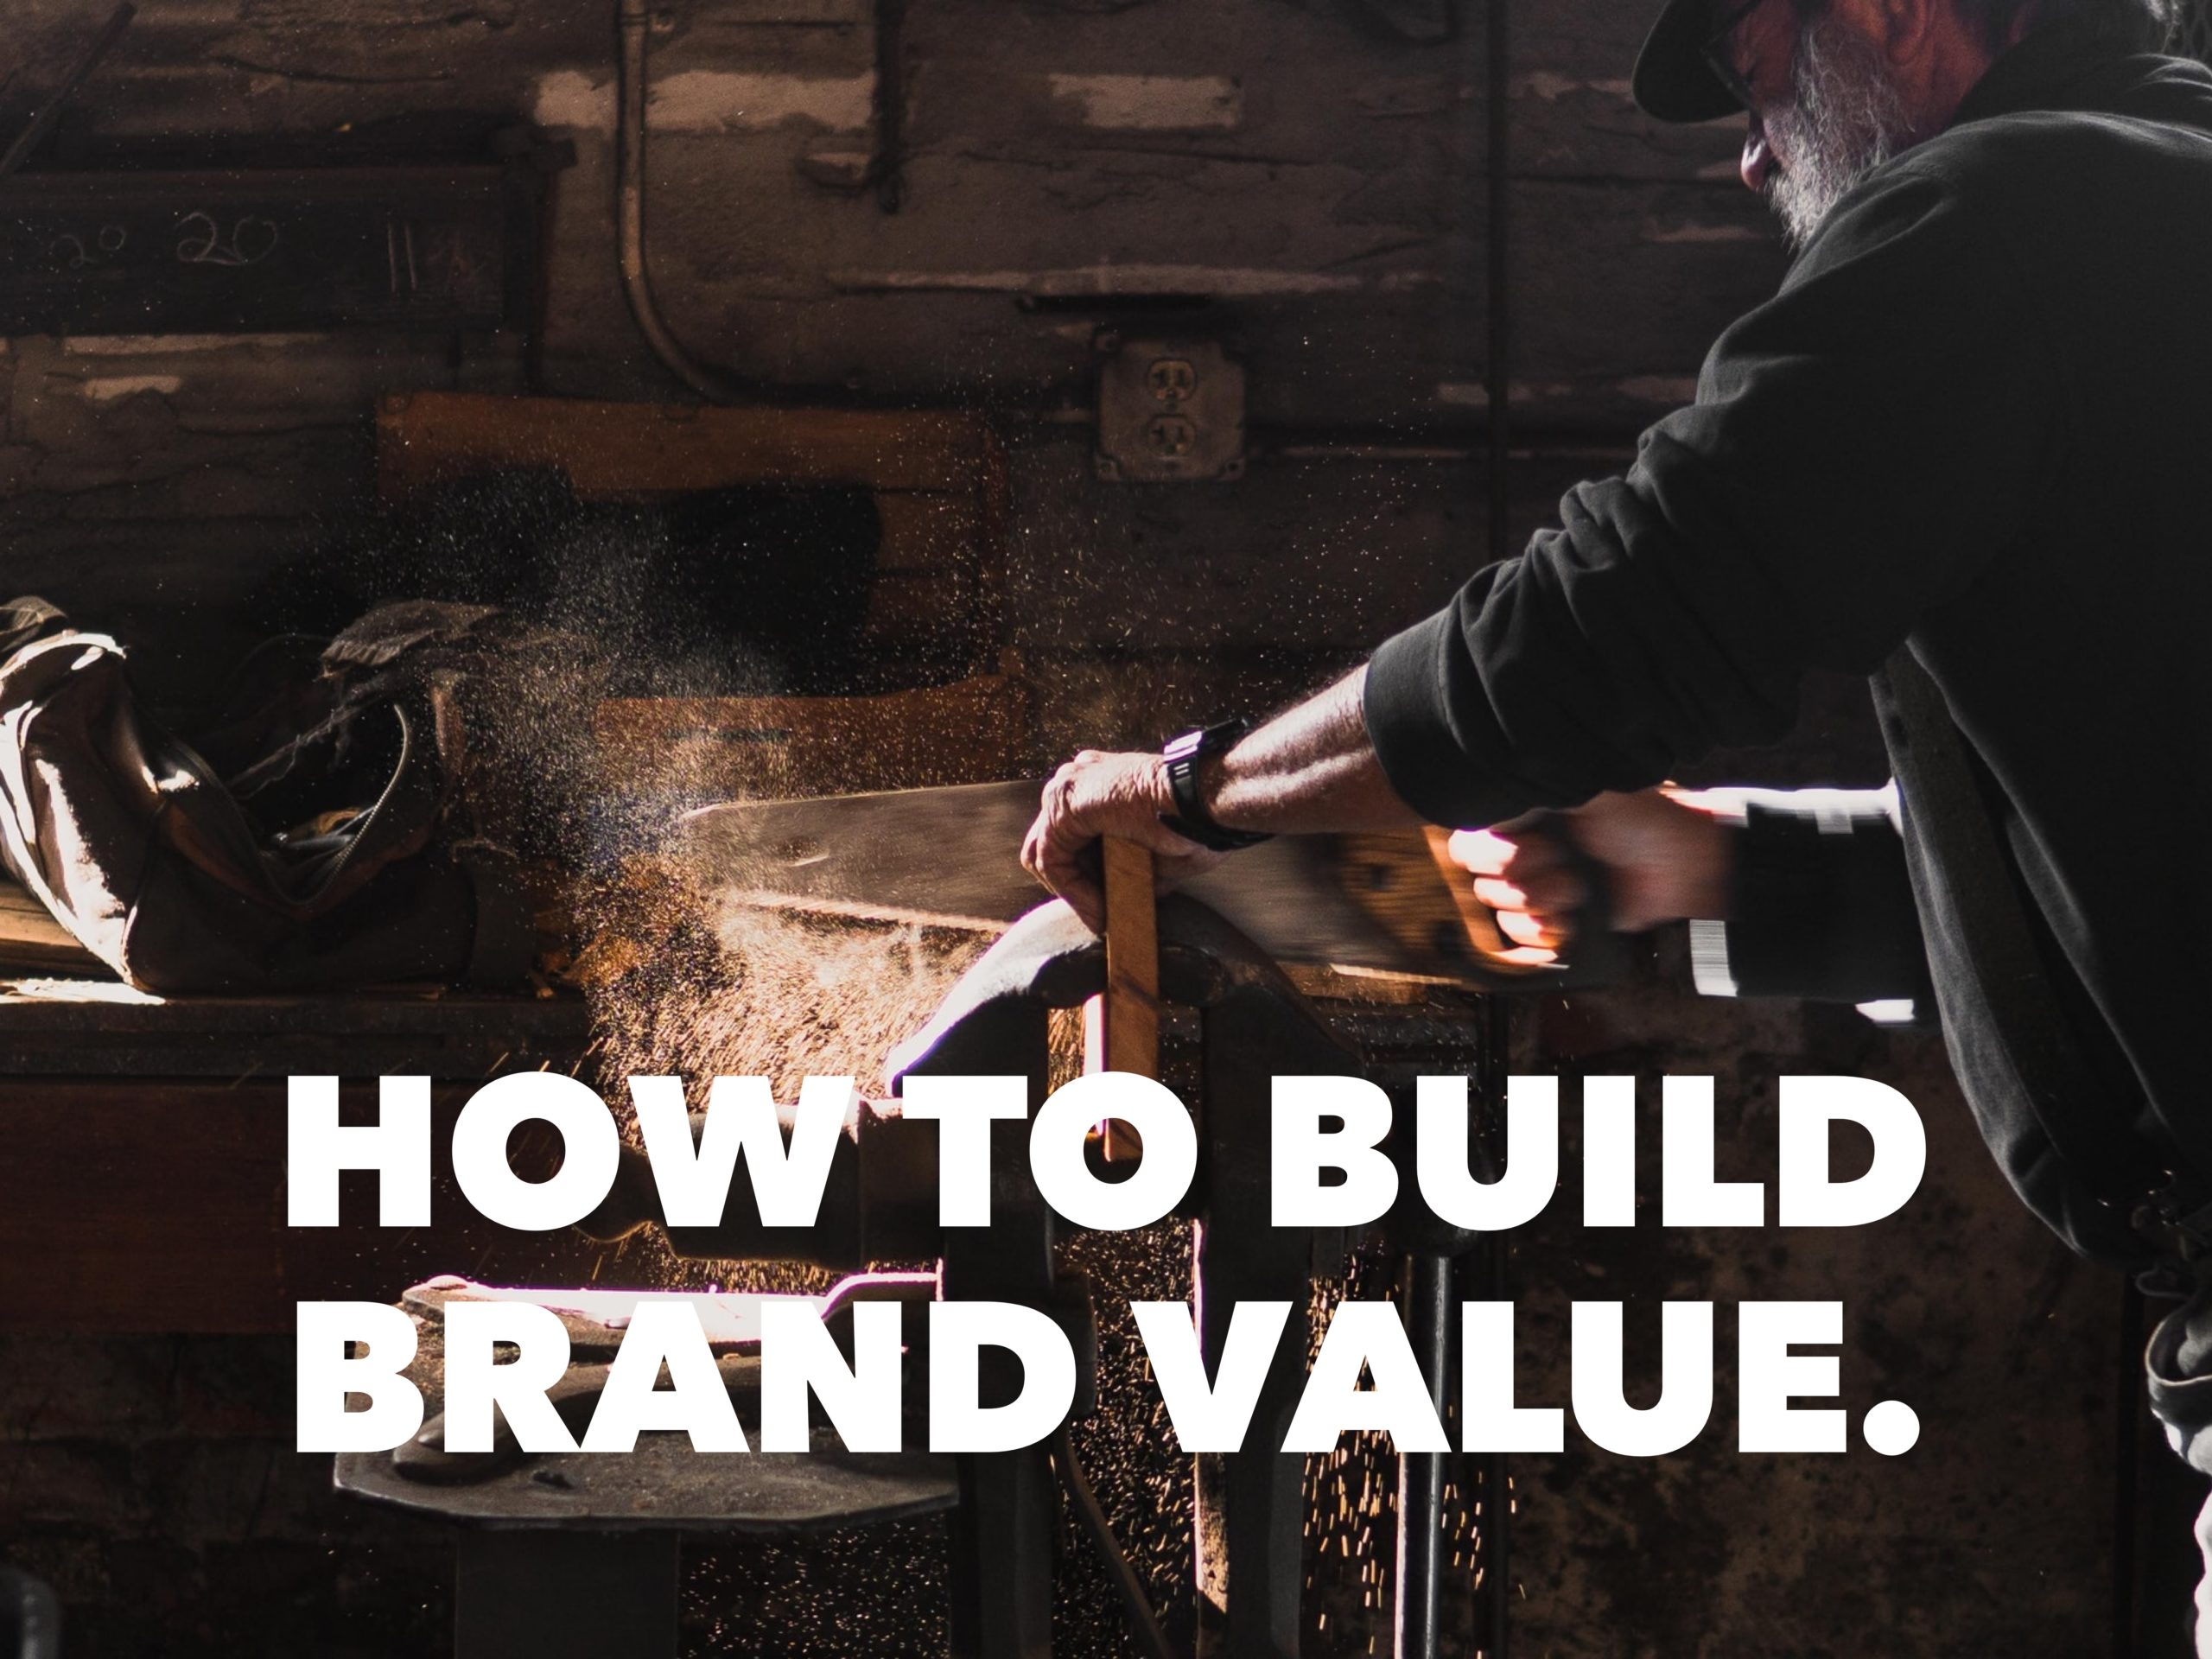 How to Build Brand Value